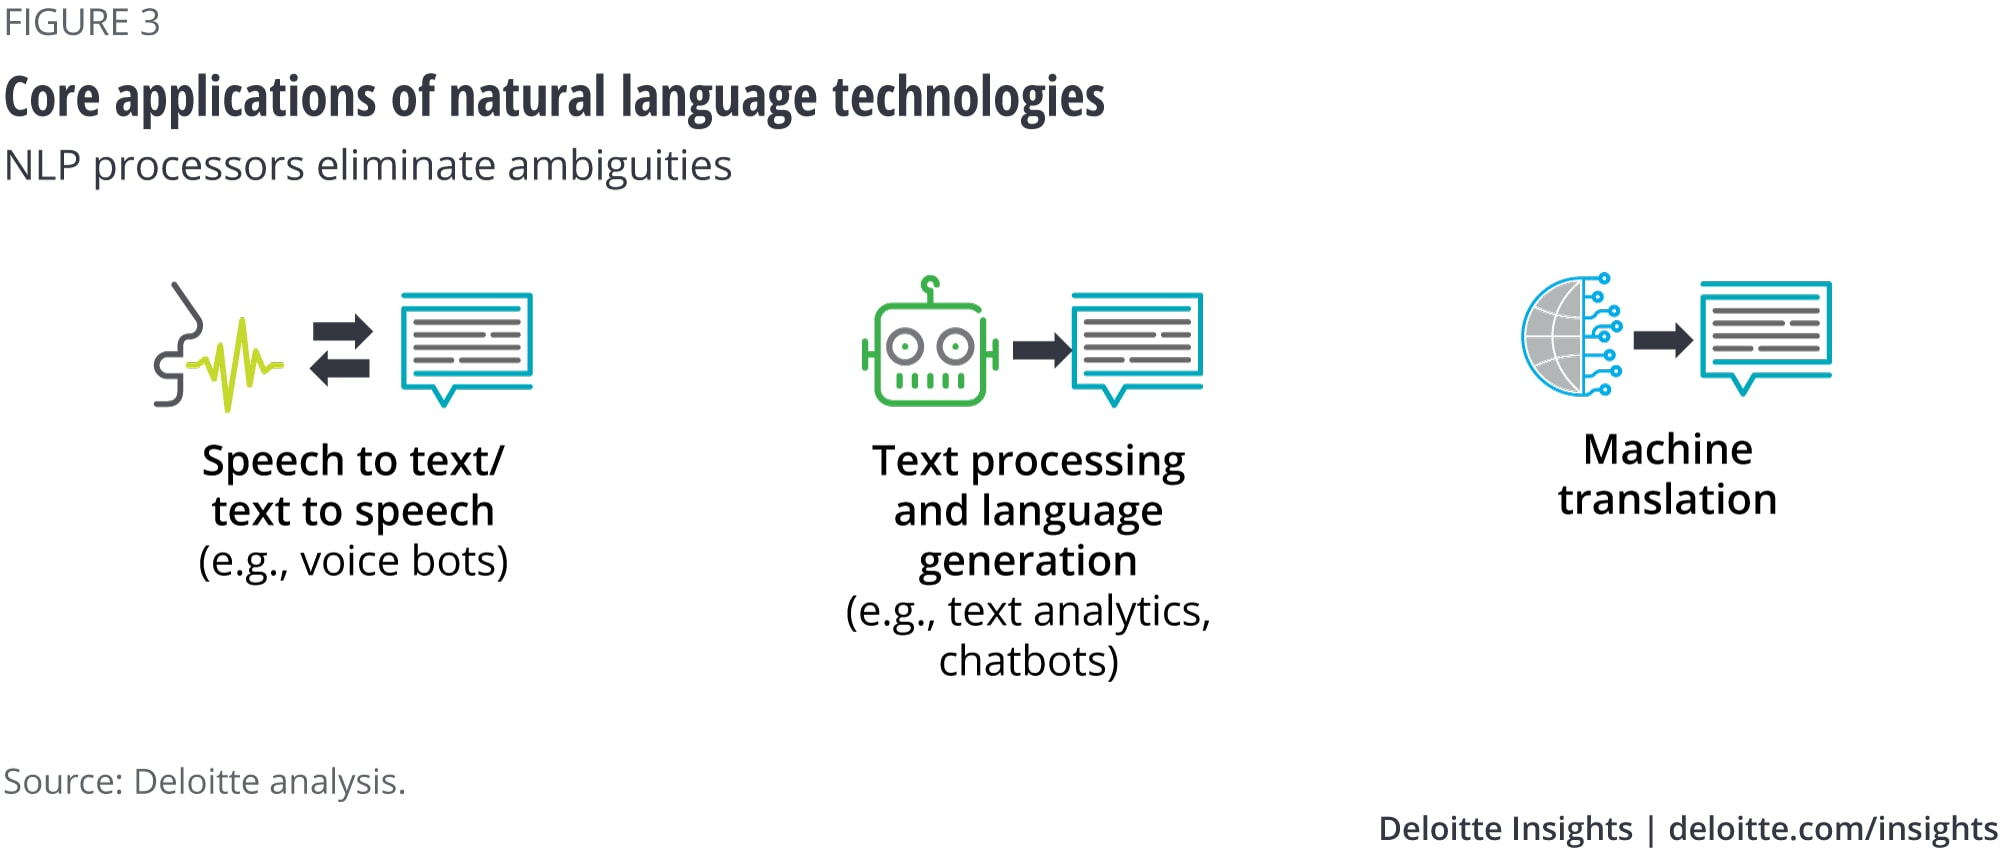 Core applications of natural language technologies